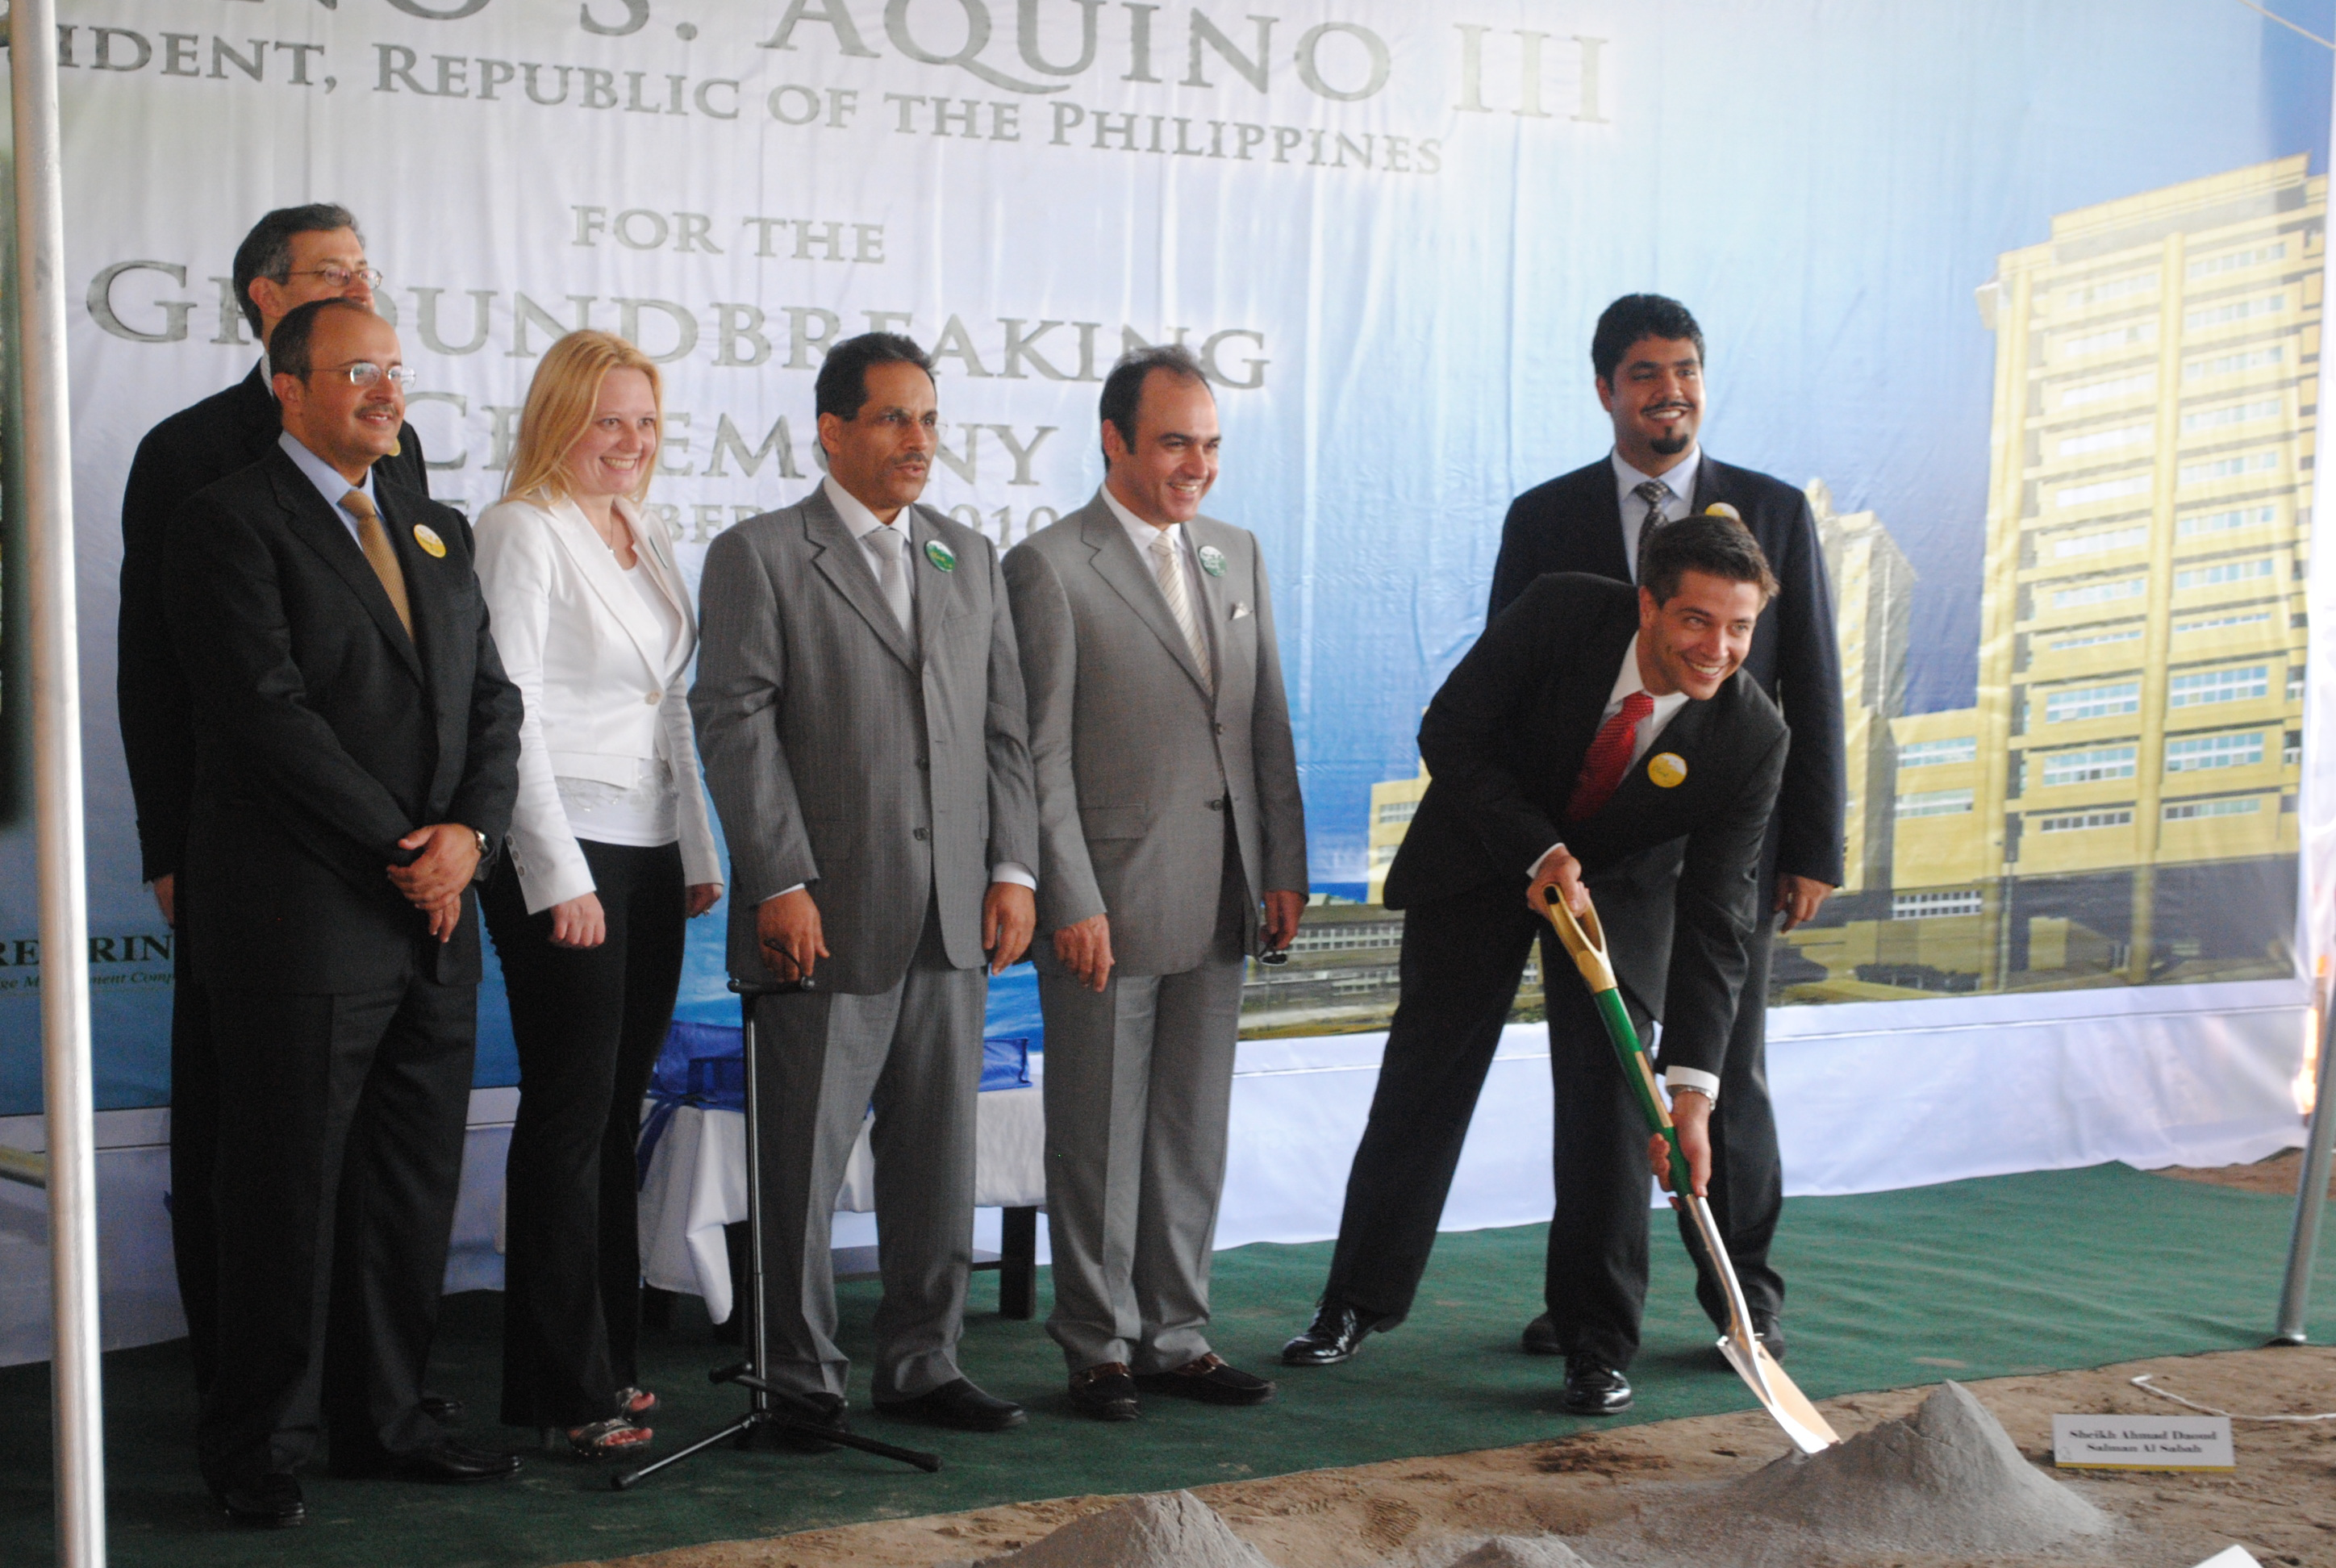 Marsha Lazareva (wearing white jacket) participates in the Medical City Hospital groundbreaking in the Philippines. Courtesy of KGL Investment